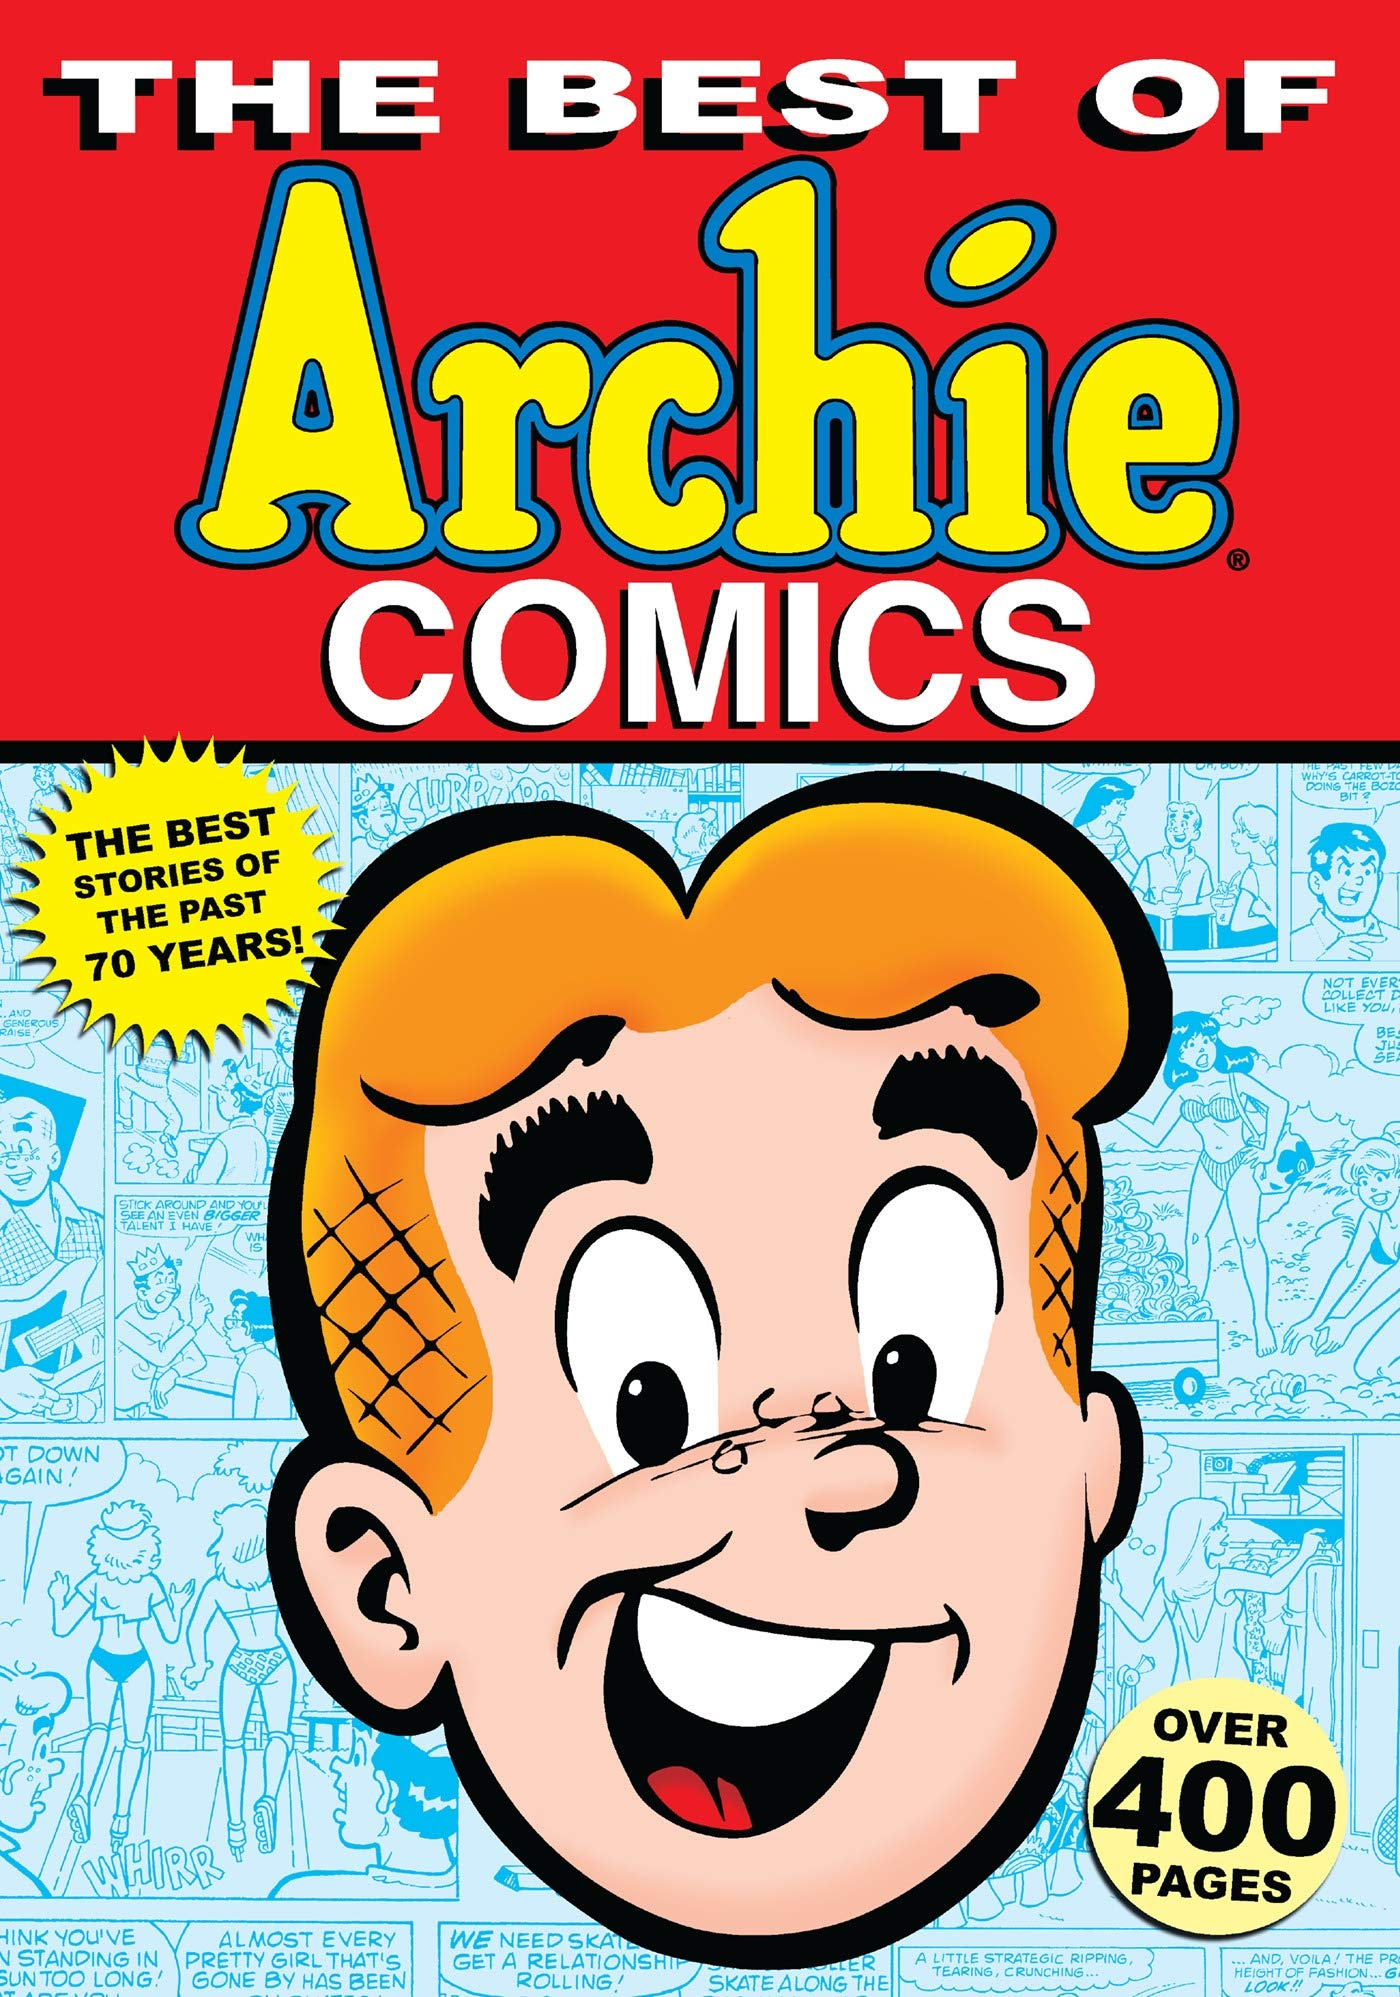 The Best Of Archie Comics Archie Superstars 9781879794849 Books